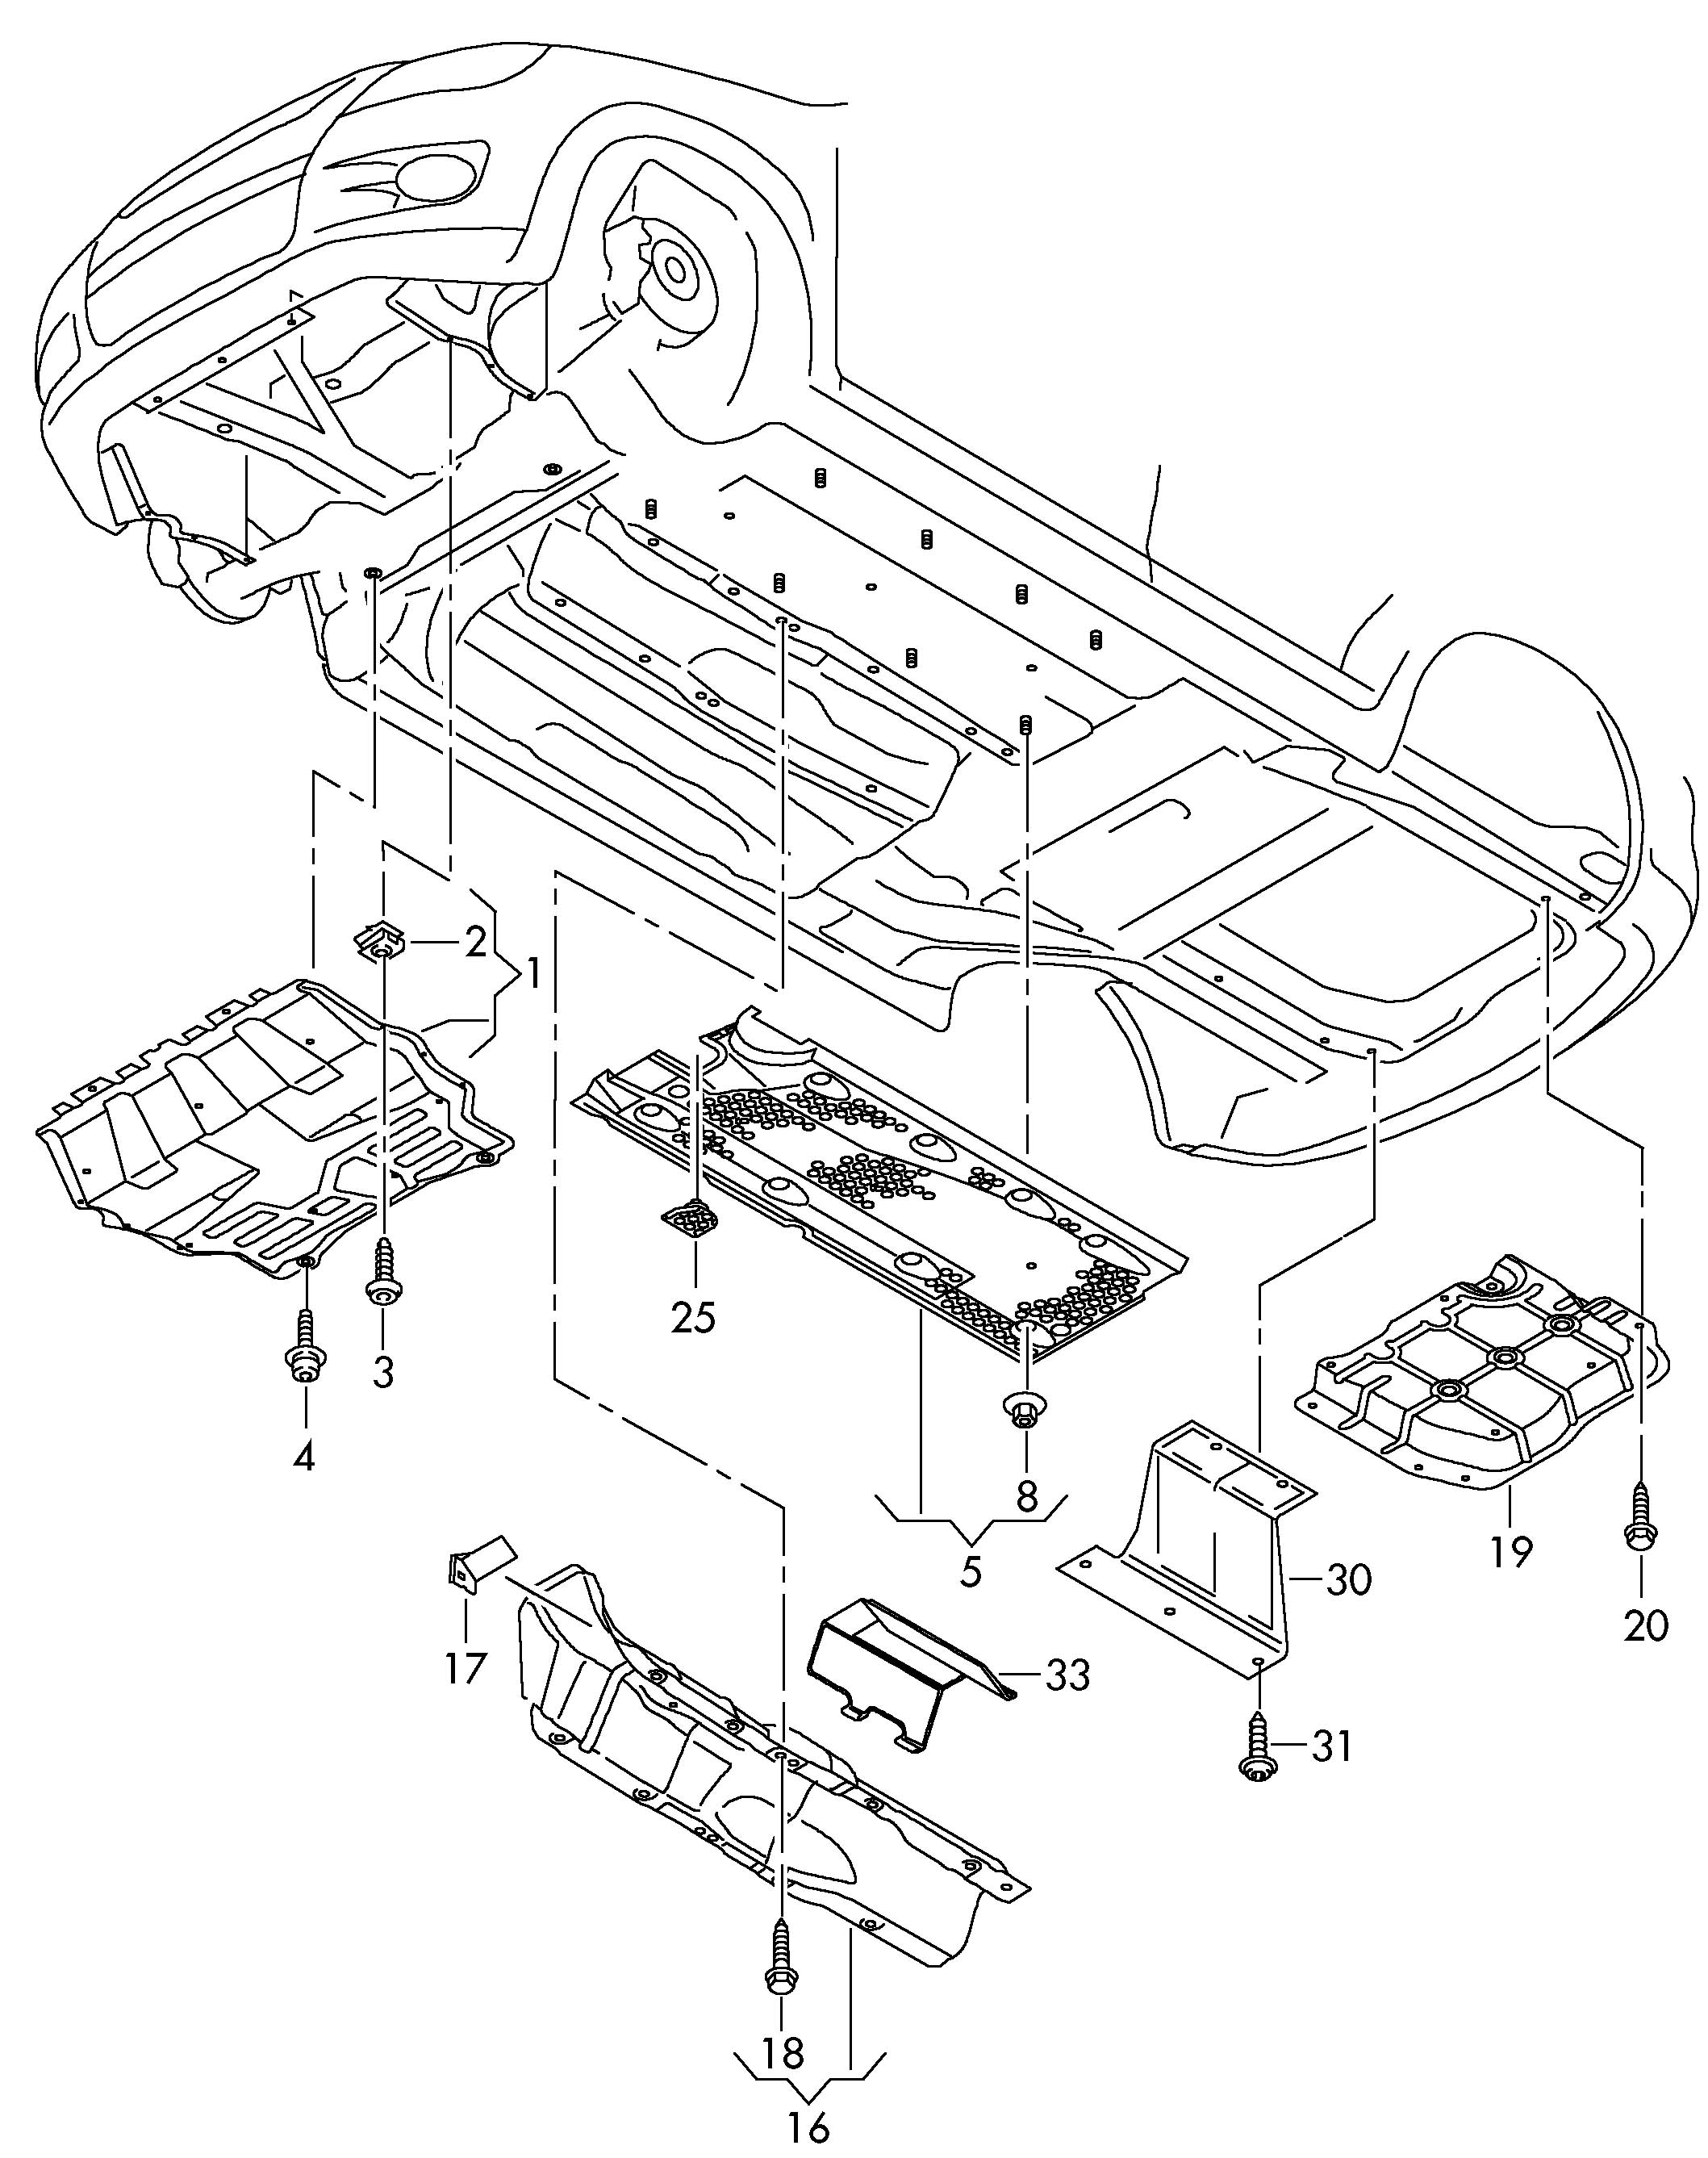 2010 Volkswagen Cc Fuse Diagram Another Blog About Wiring 1998 Beetle Box New Parts And Accessories Imageresizertool Com Vw